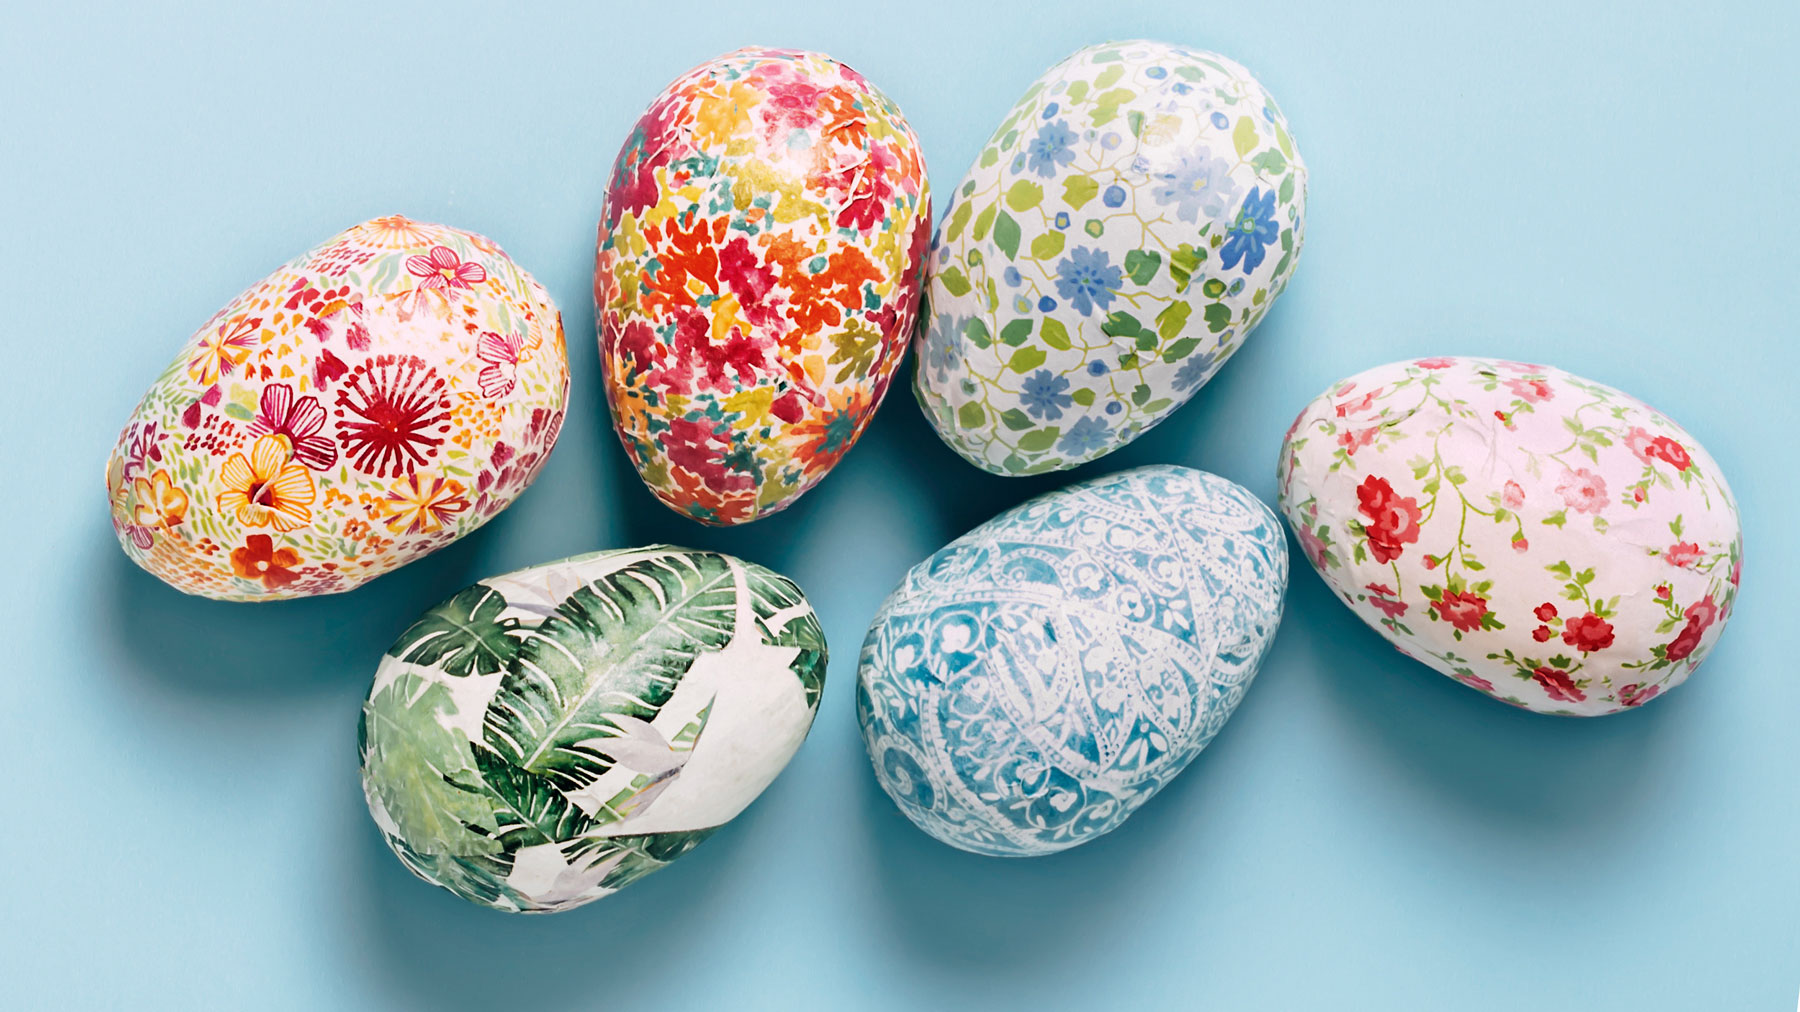 Quarantine Easter activities: How to Celebrate Easter During Coronavirus (decorated fake Easter eggs)